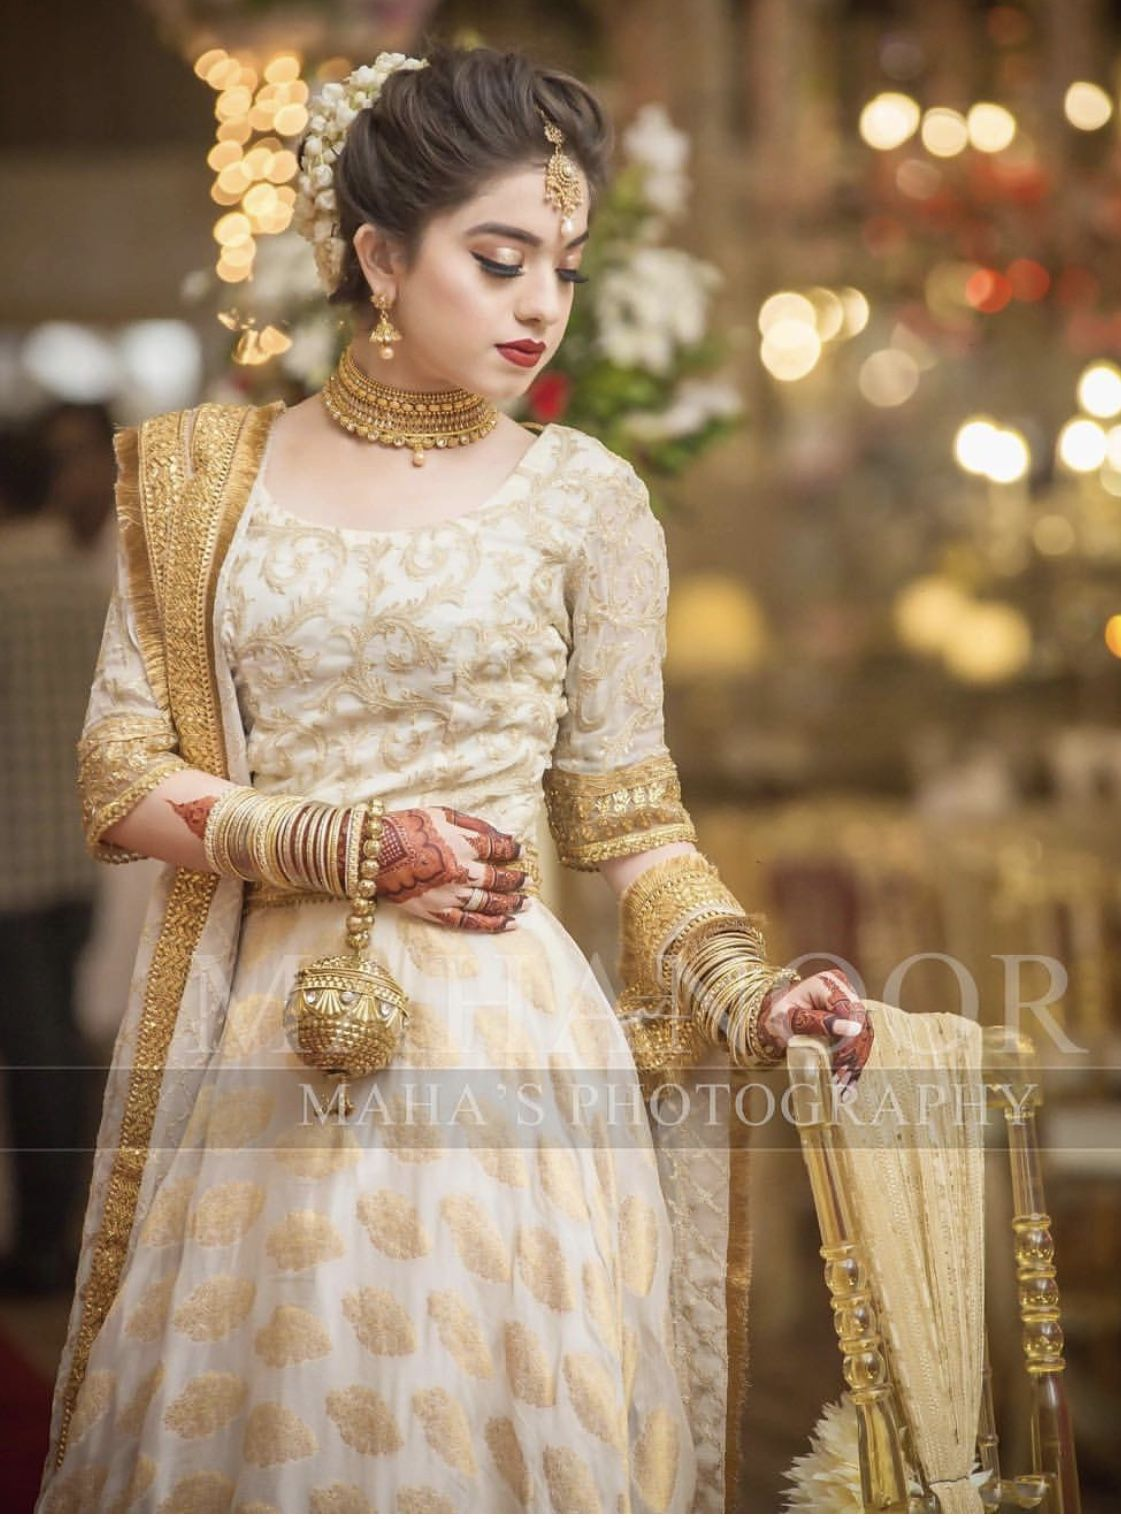 Brides sister ( this would be a good nikkah dress for the